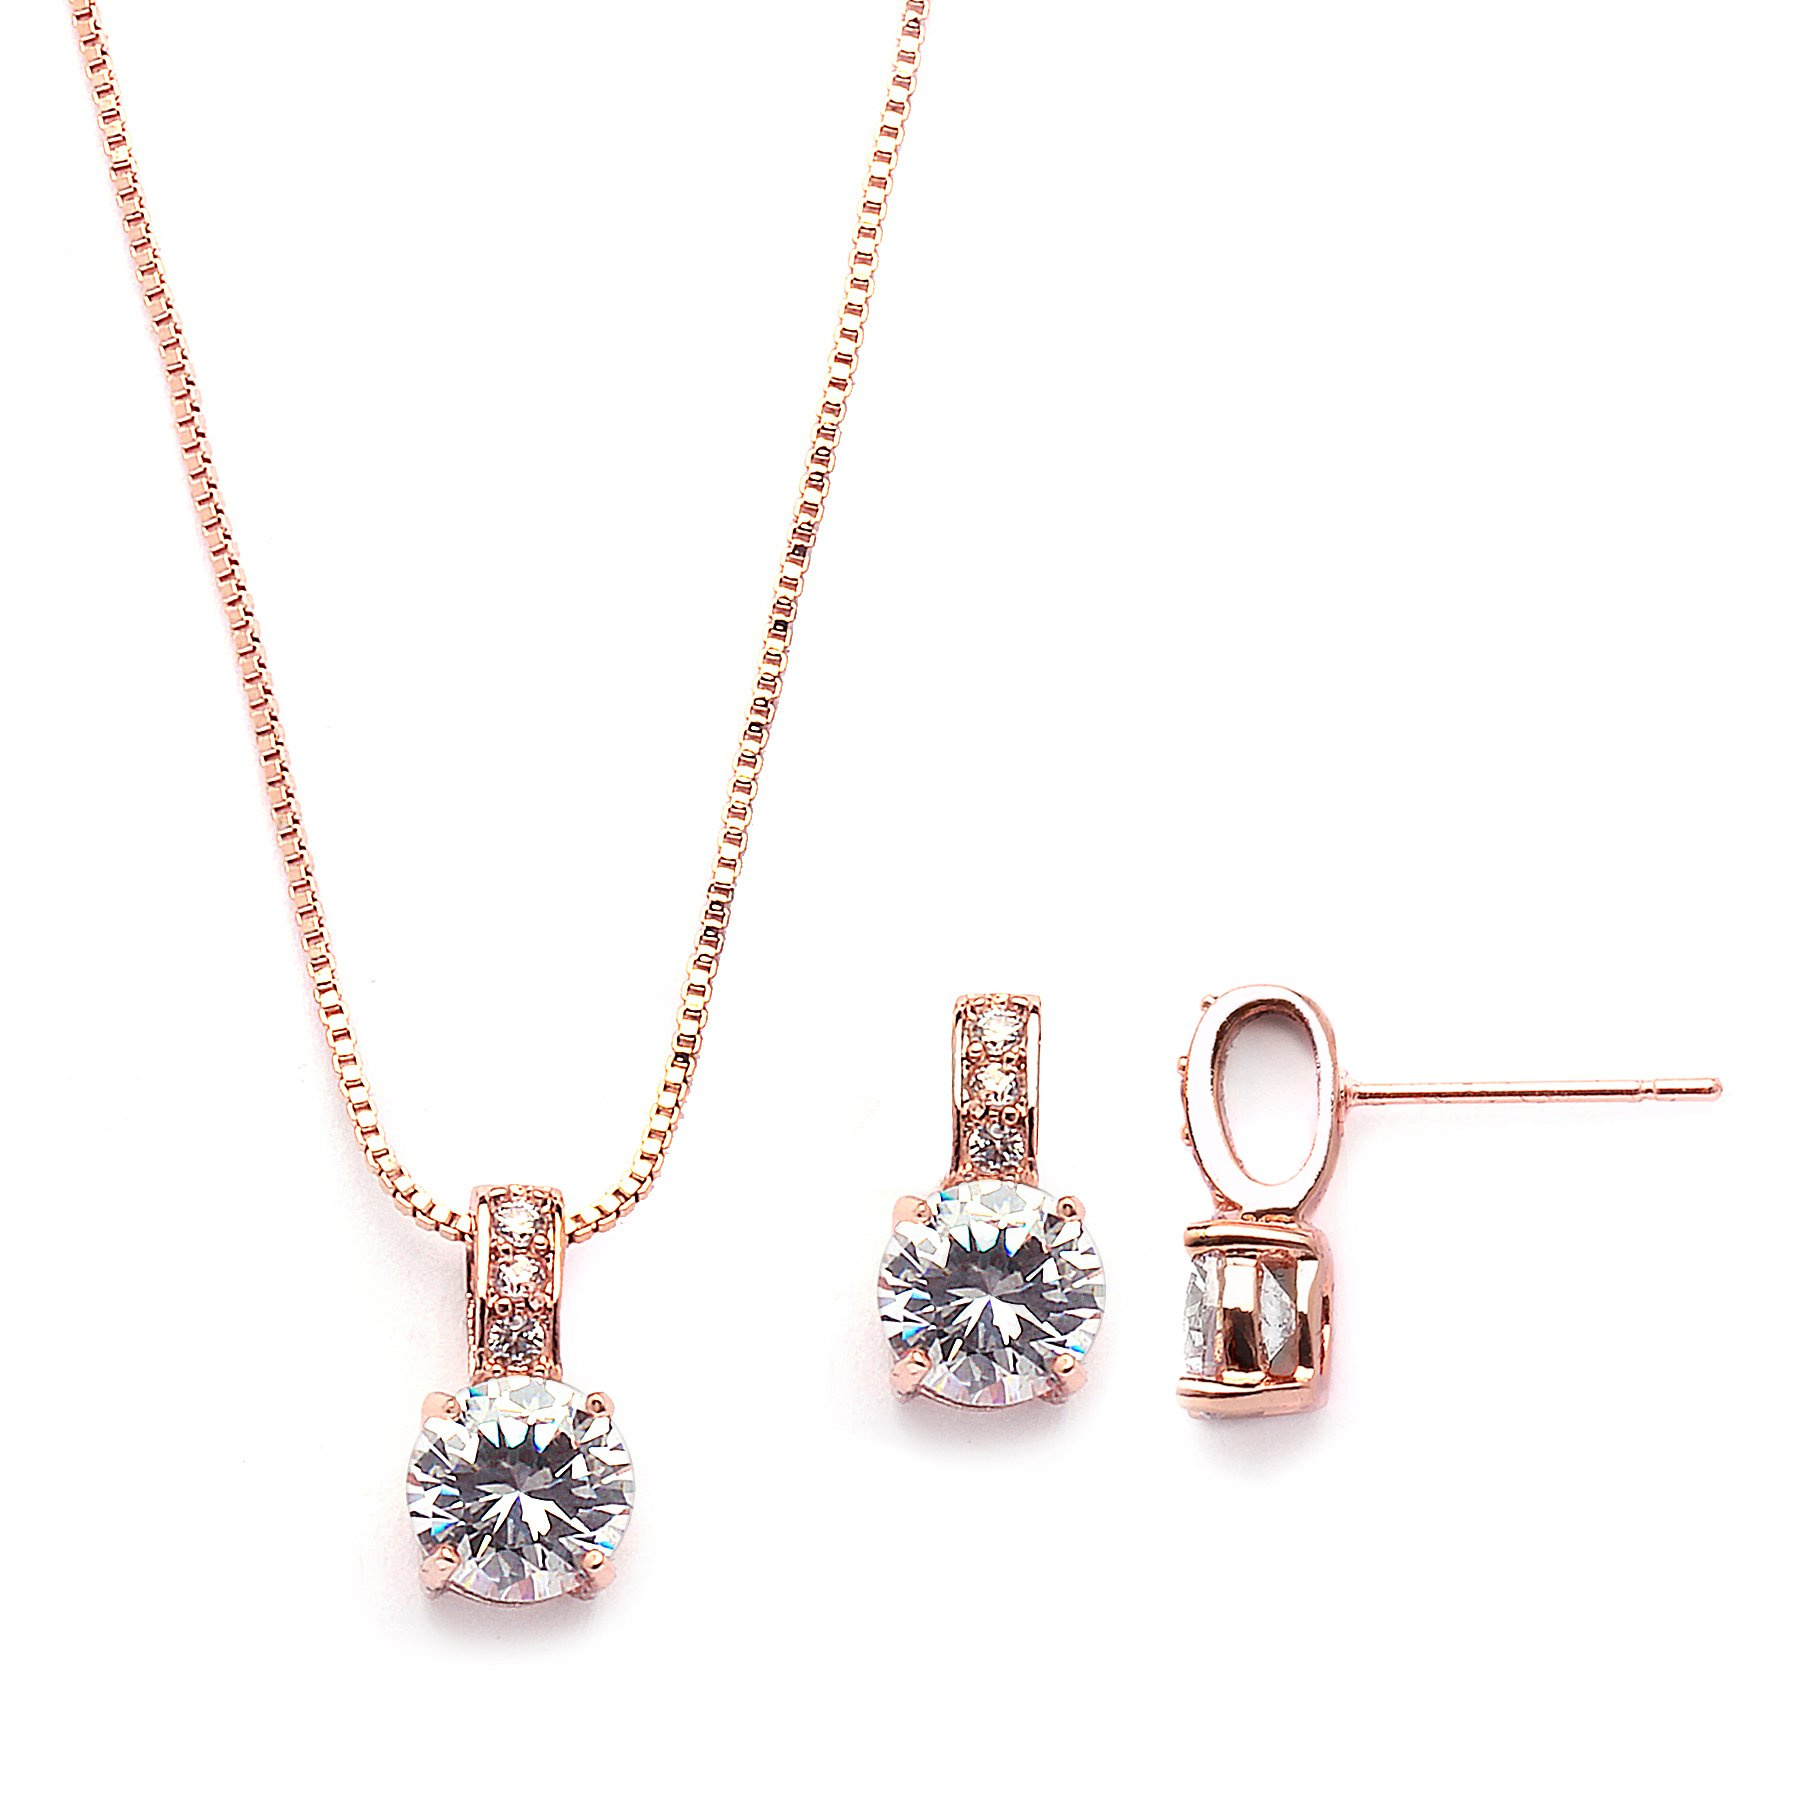 Mariell Rose Gold Round-Cut Cubic Zirconia Necklace Earrings Set for Brides, Bridesmaids & Everyday Wear by Mariell